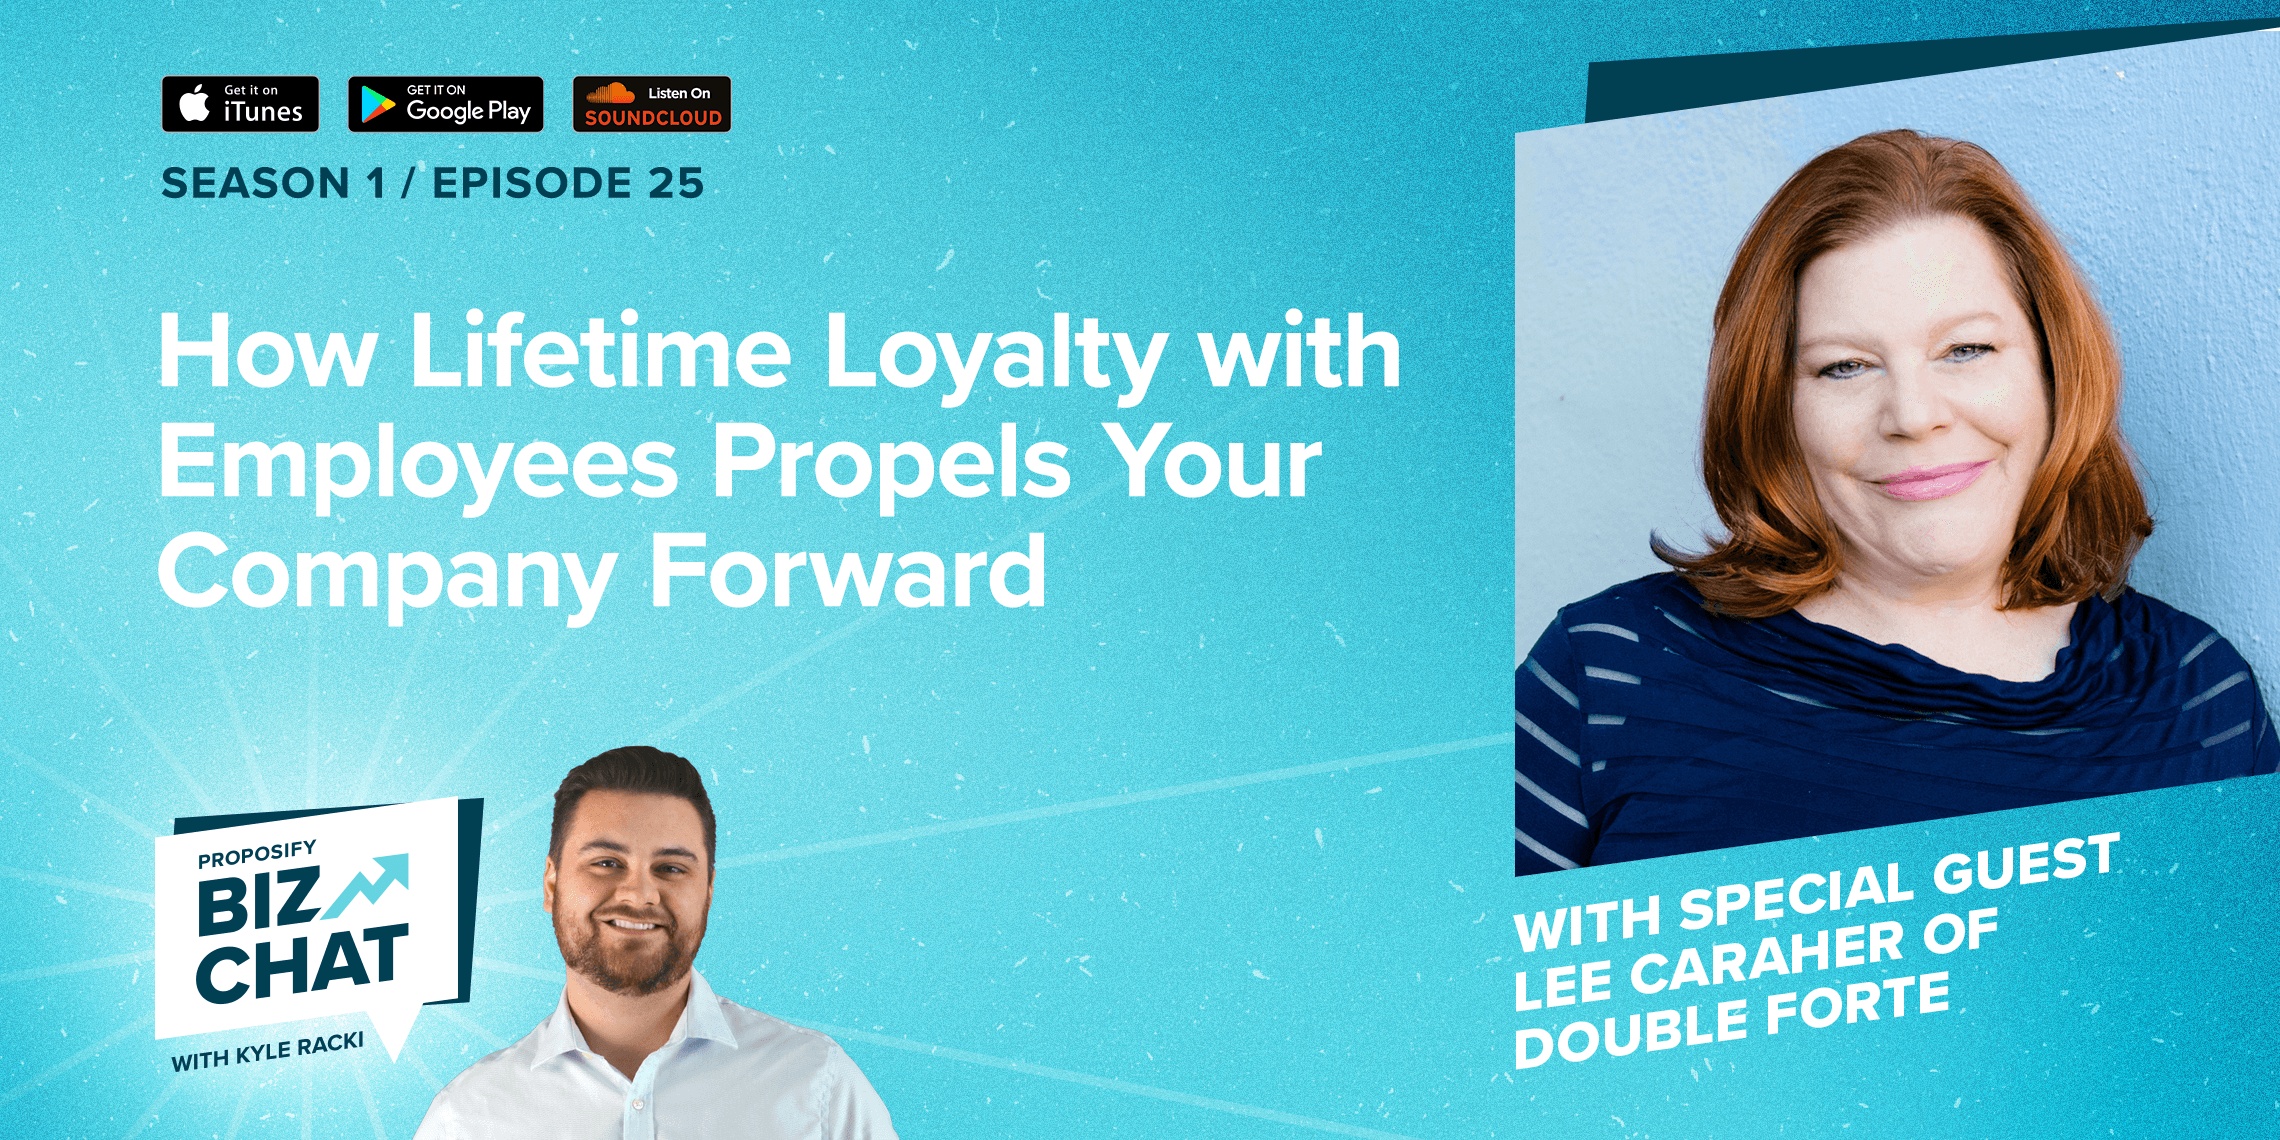 How Lifetime Loyalty with Employees Propels Your Company Forward